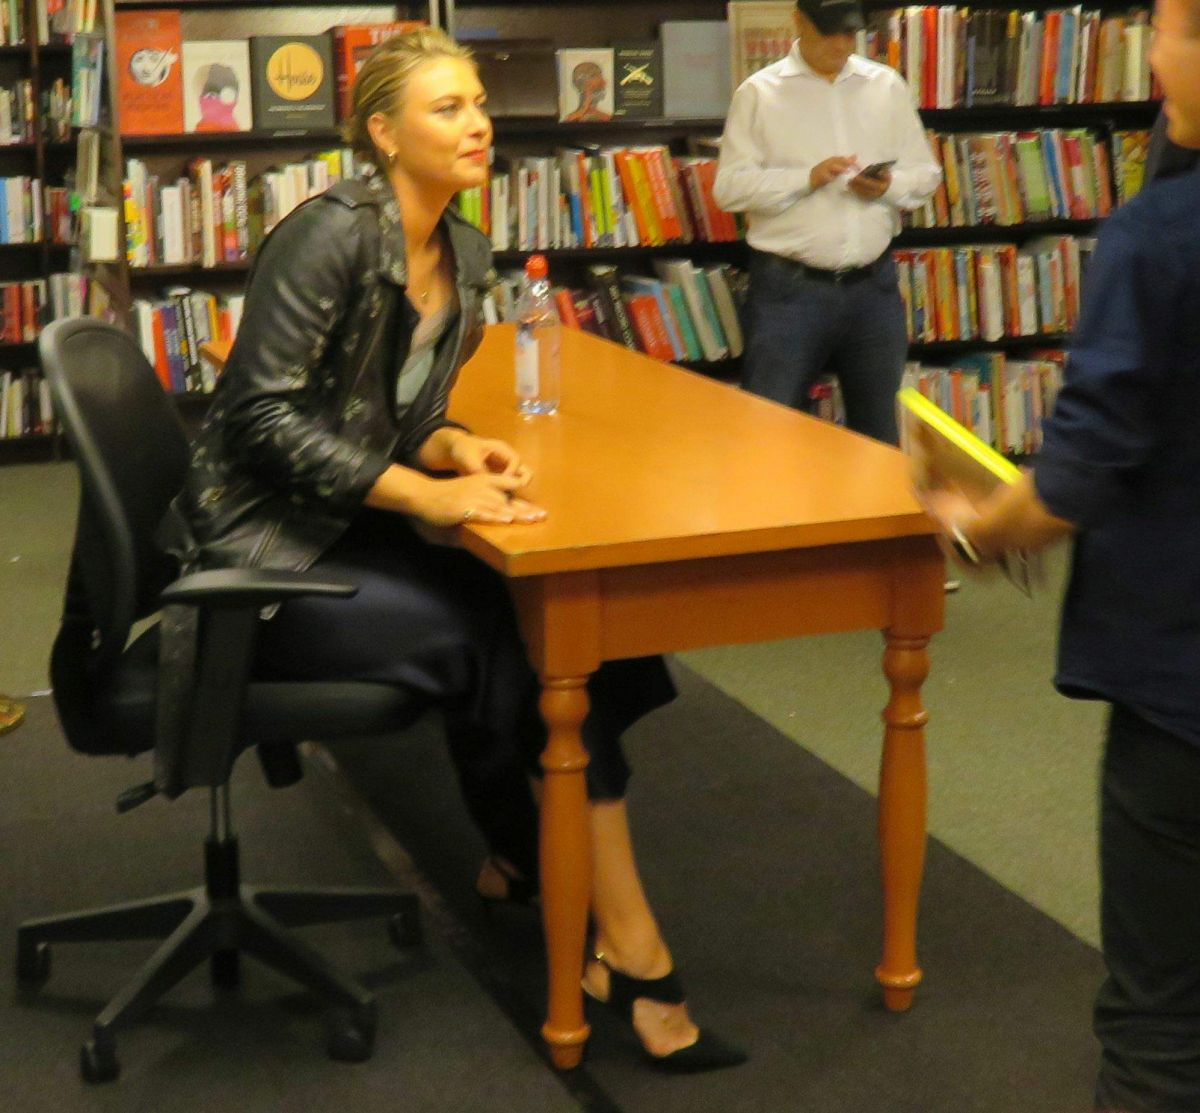 MARIA SHARAPOVA Signing Her Book at Barnes & Noble in New